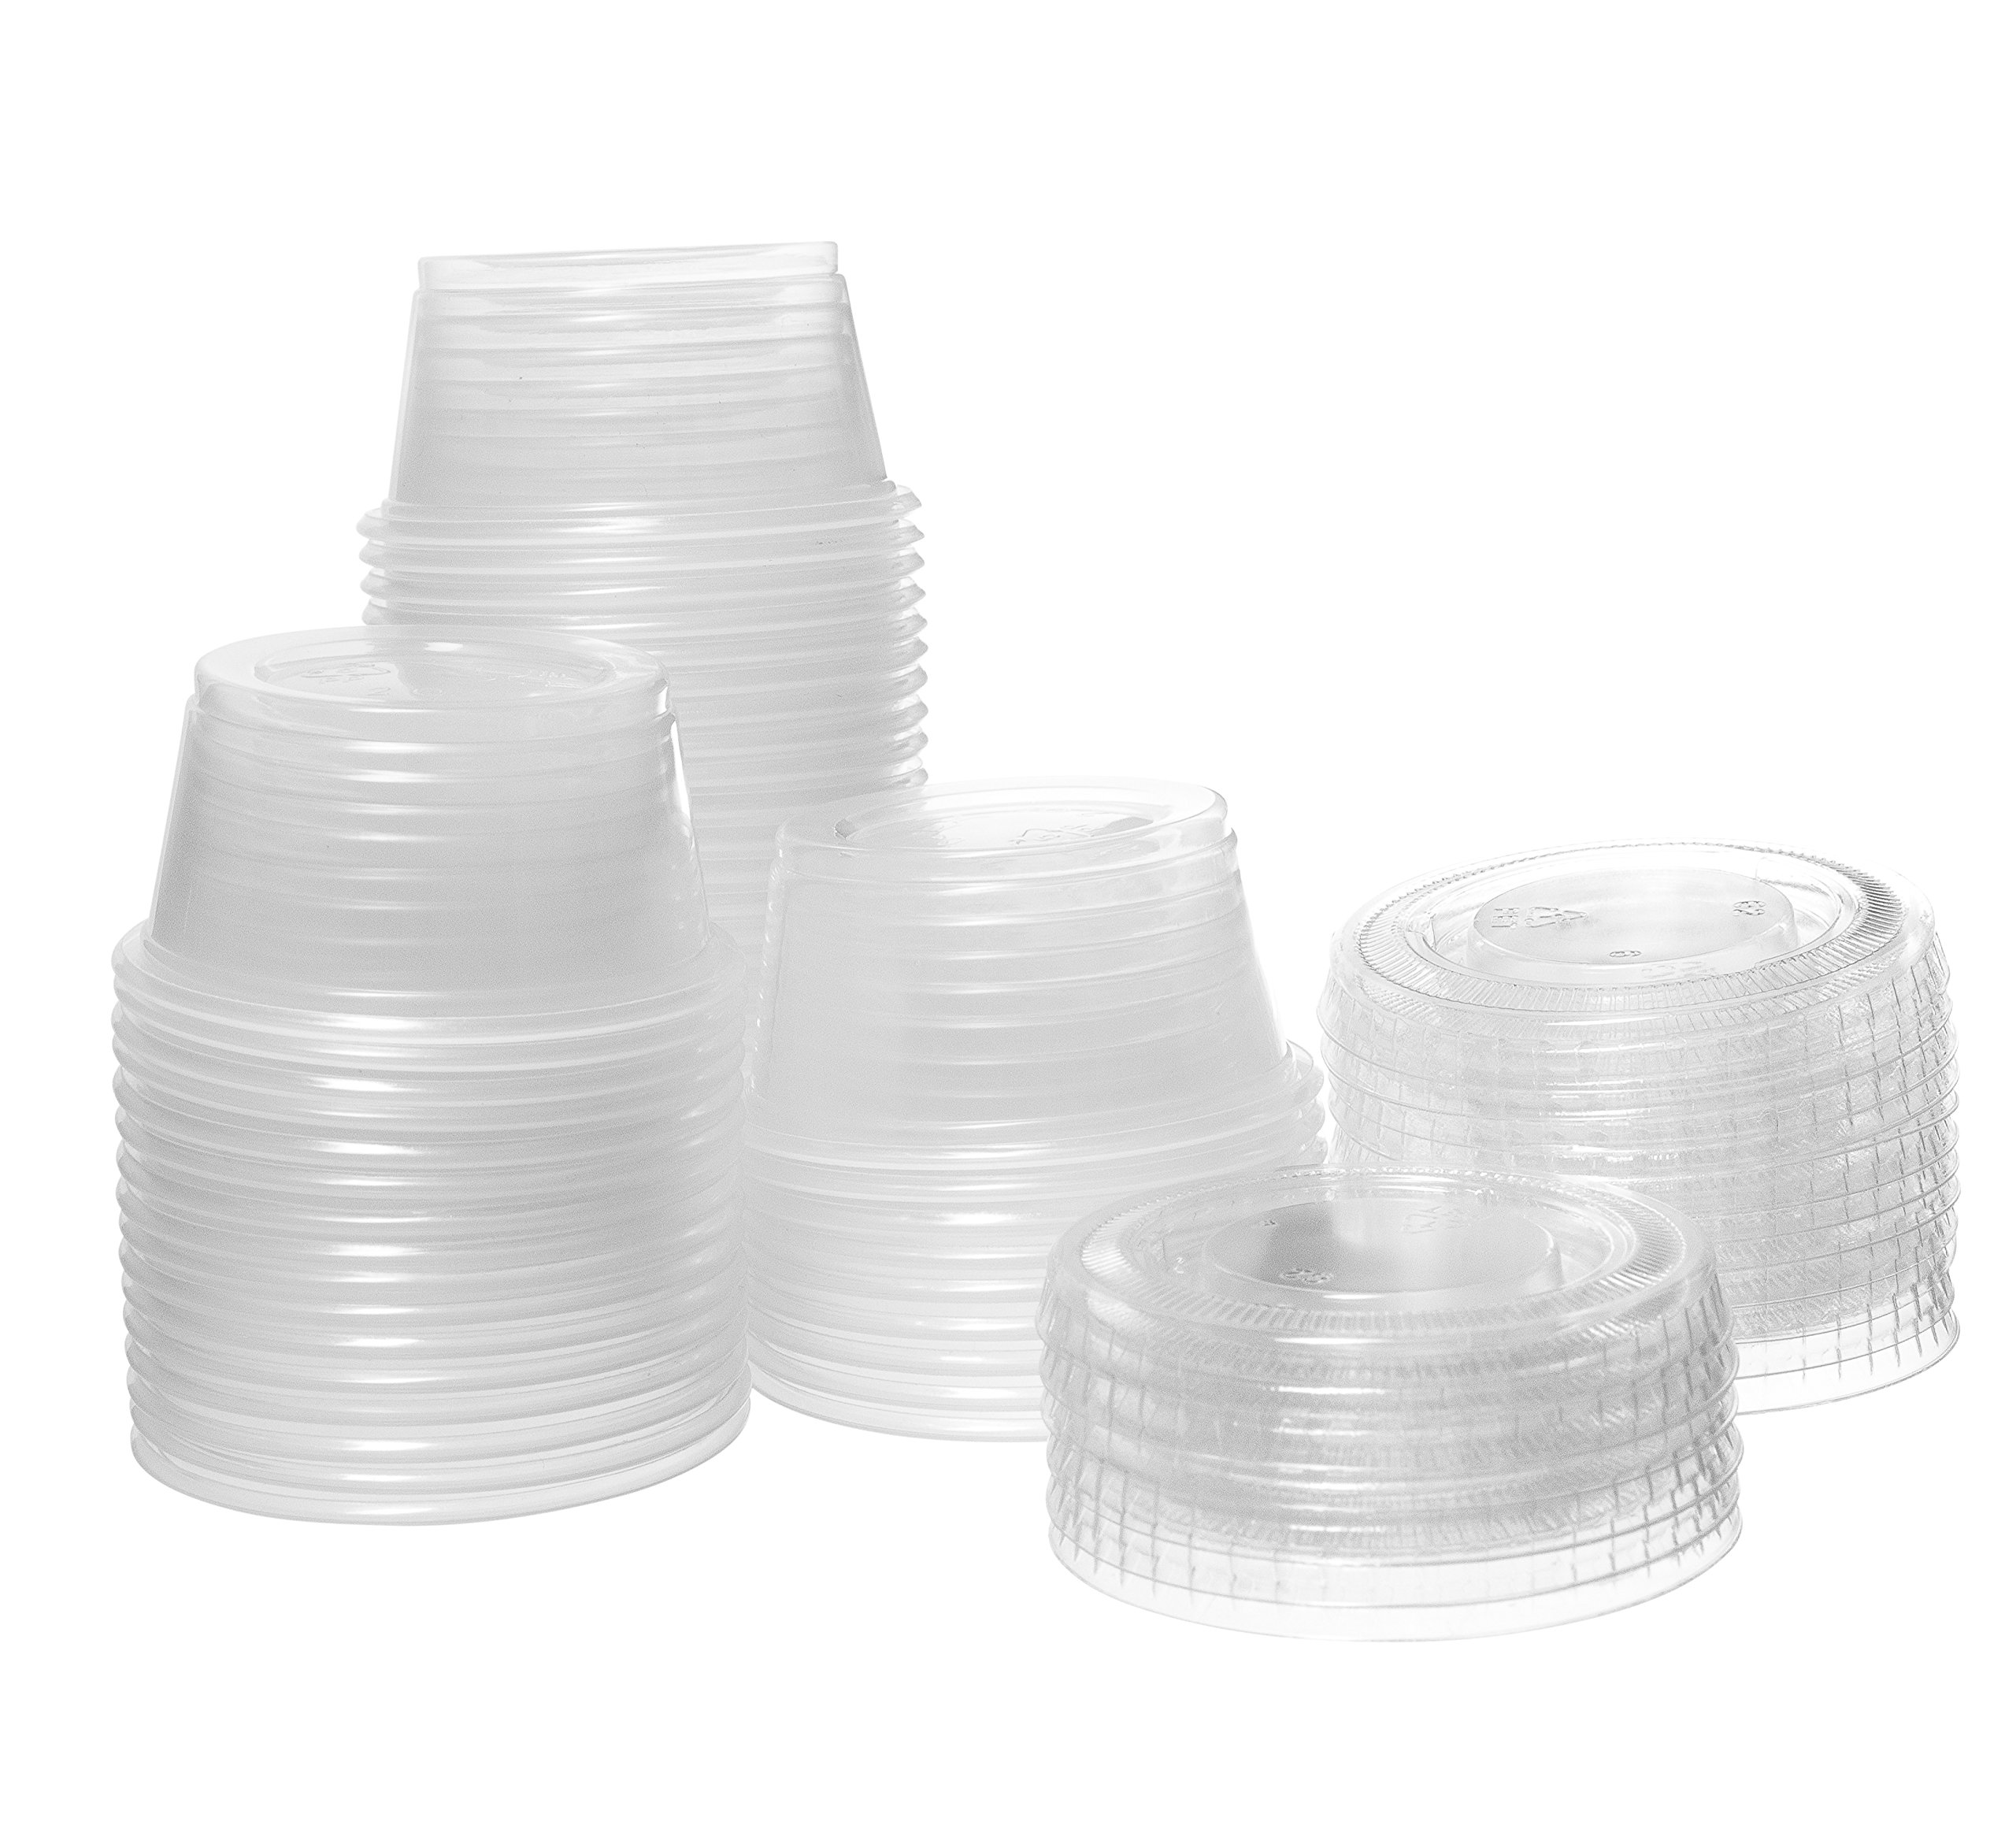 Crystalware Disposable 2oz. Plastic Portion Cups with Lids - Condiment Cup, Jello Shot, Soufflé Portion, Sampling Cups, 100 Sets – Clear